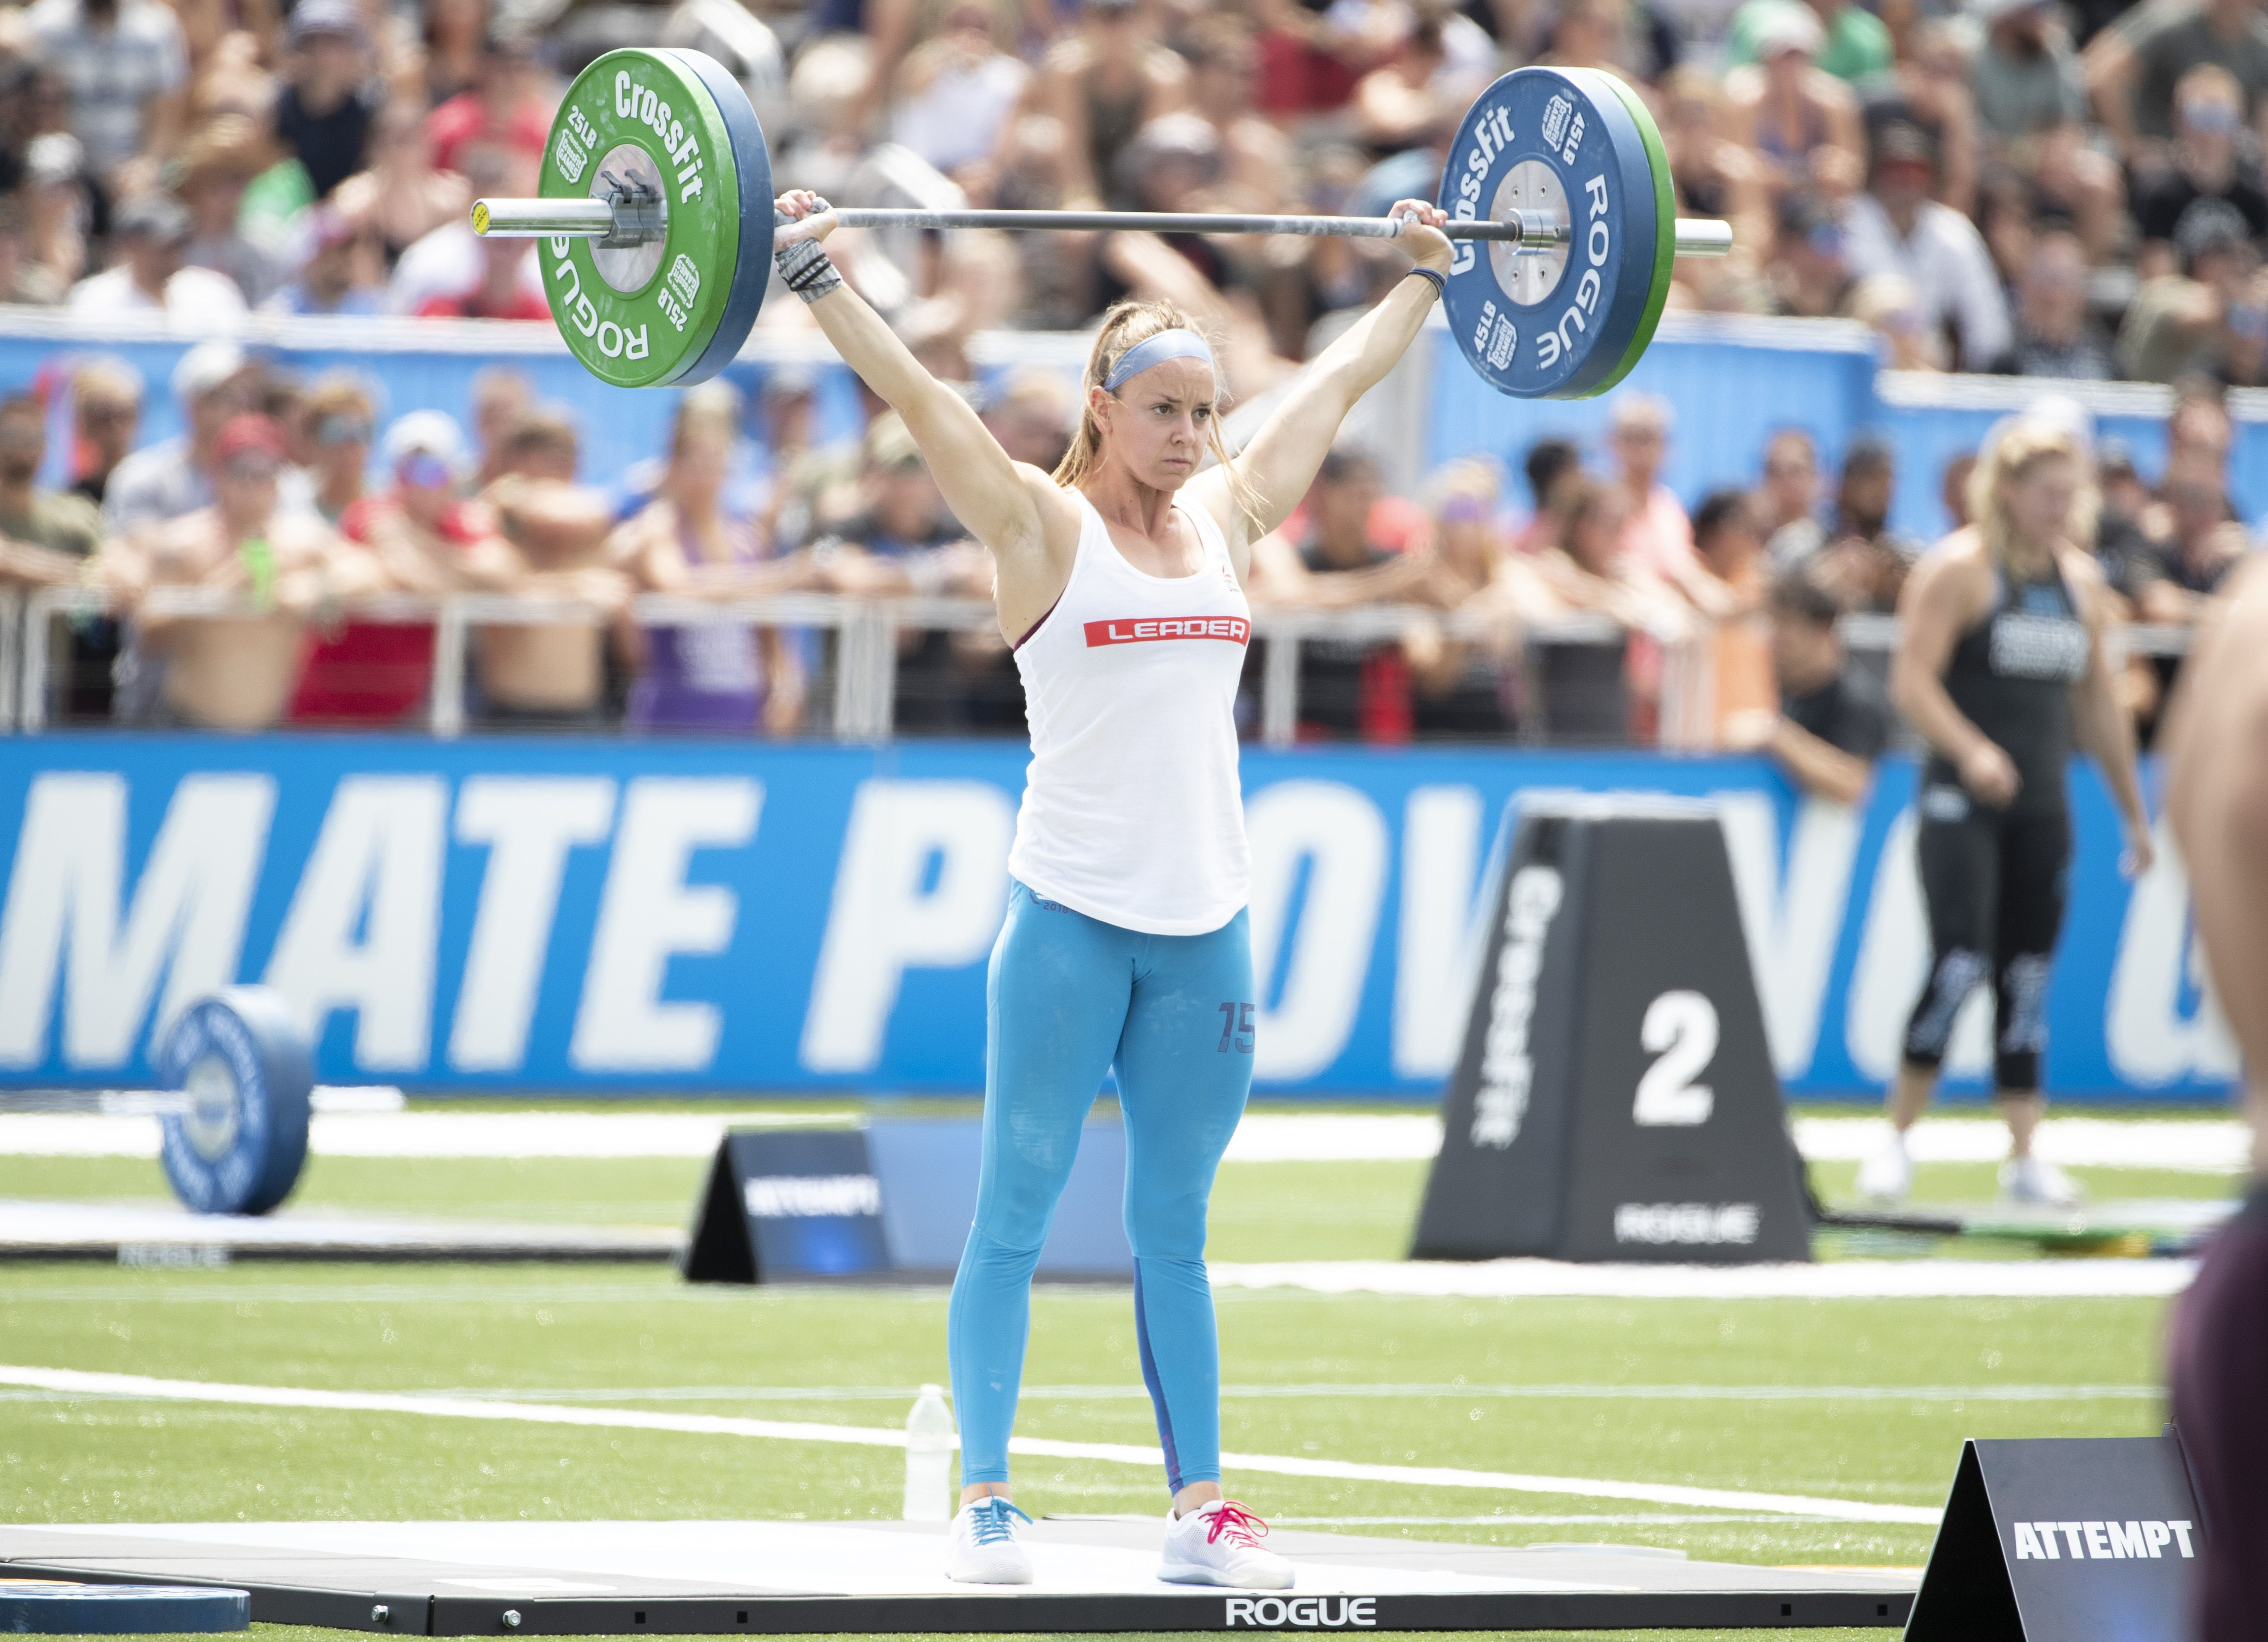 Crossfit Champ Lindy Barber Eats Two Breakfasts Every Day advise